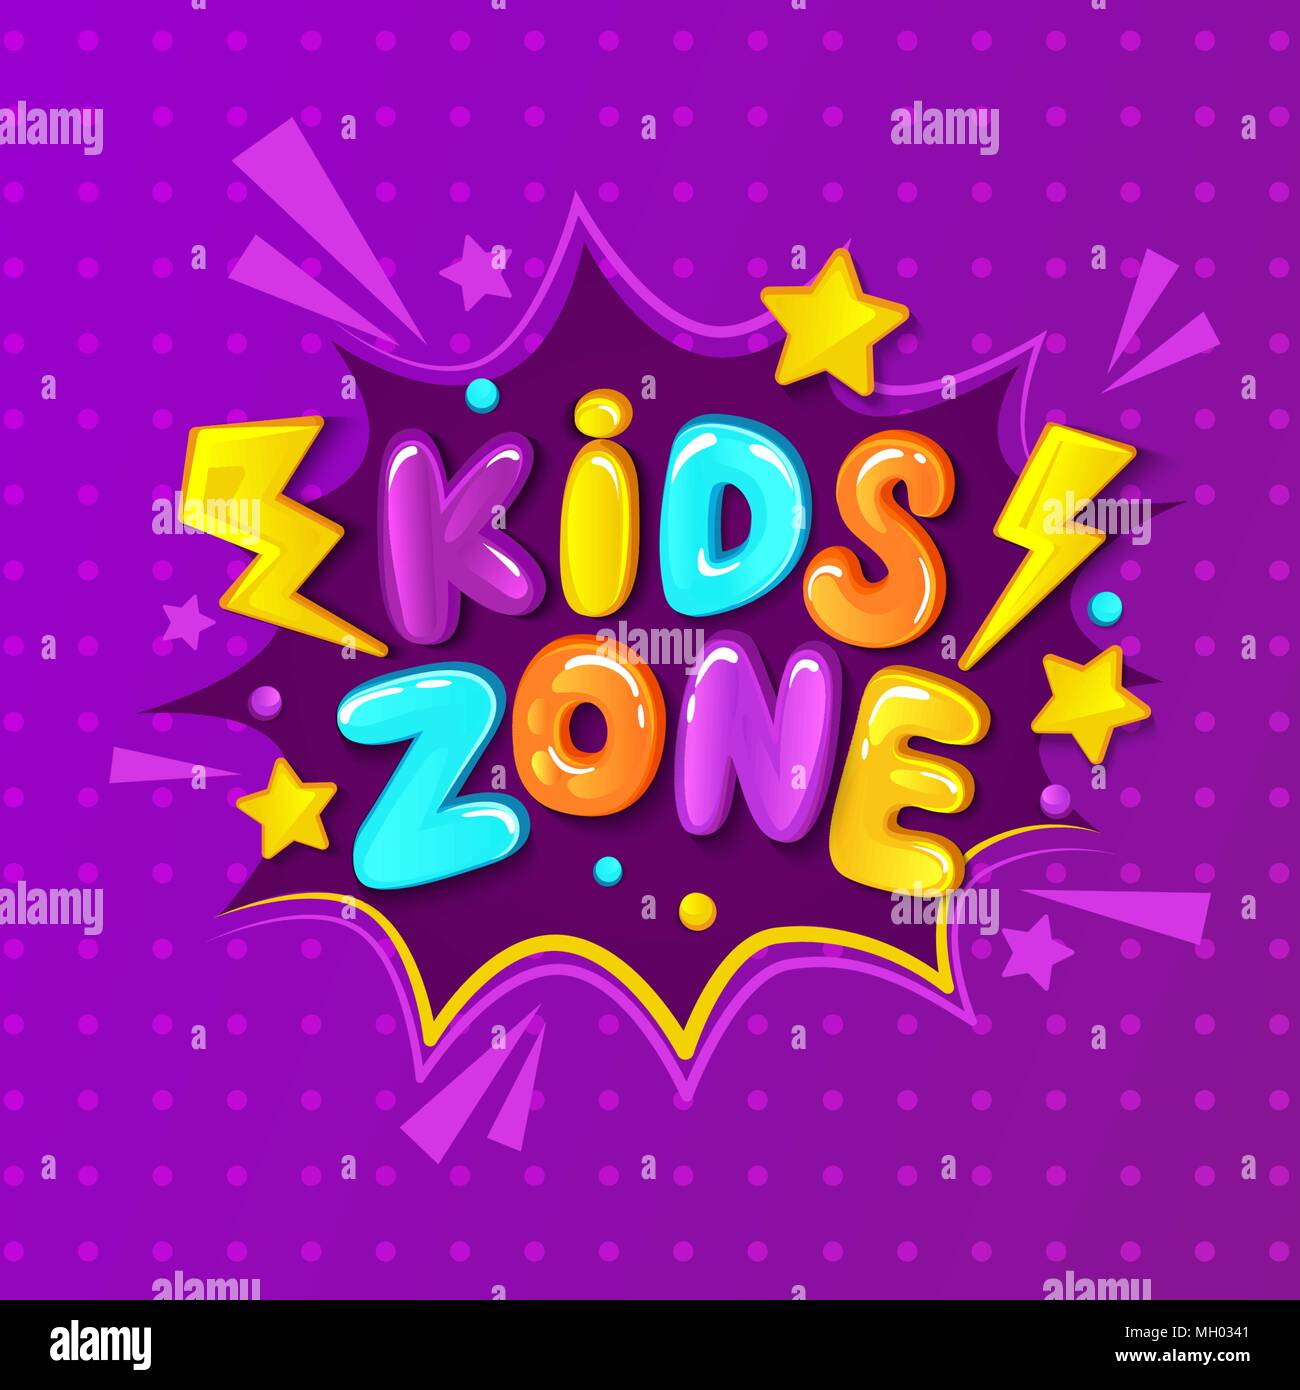 Kids zone banner, emblem or logo in cartoon style. Place for fun and ...